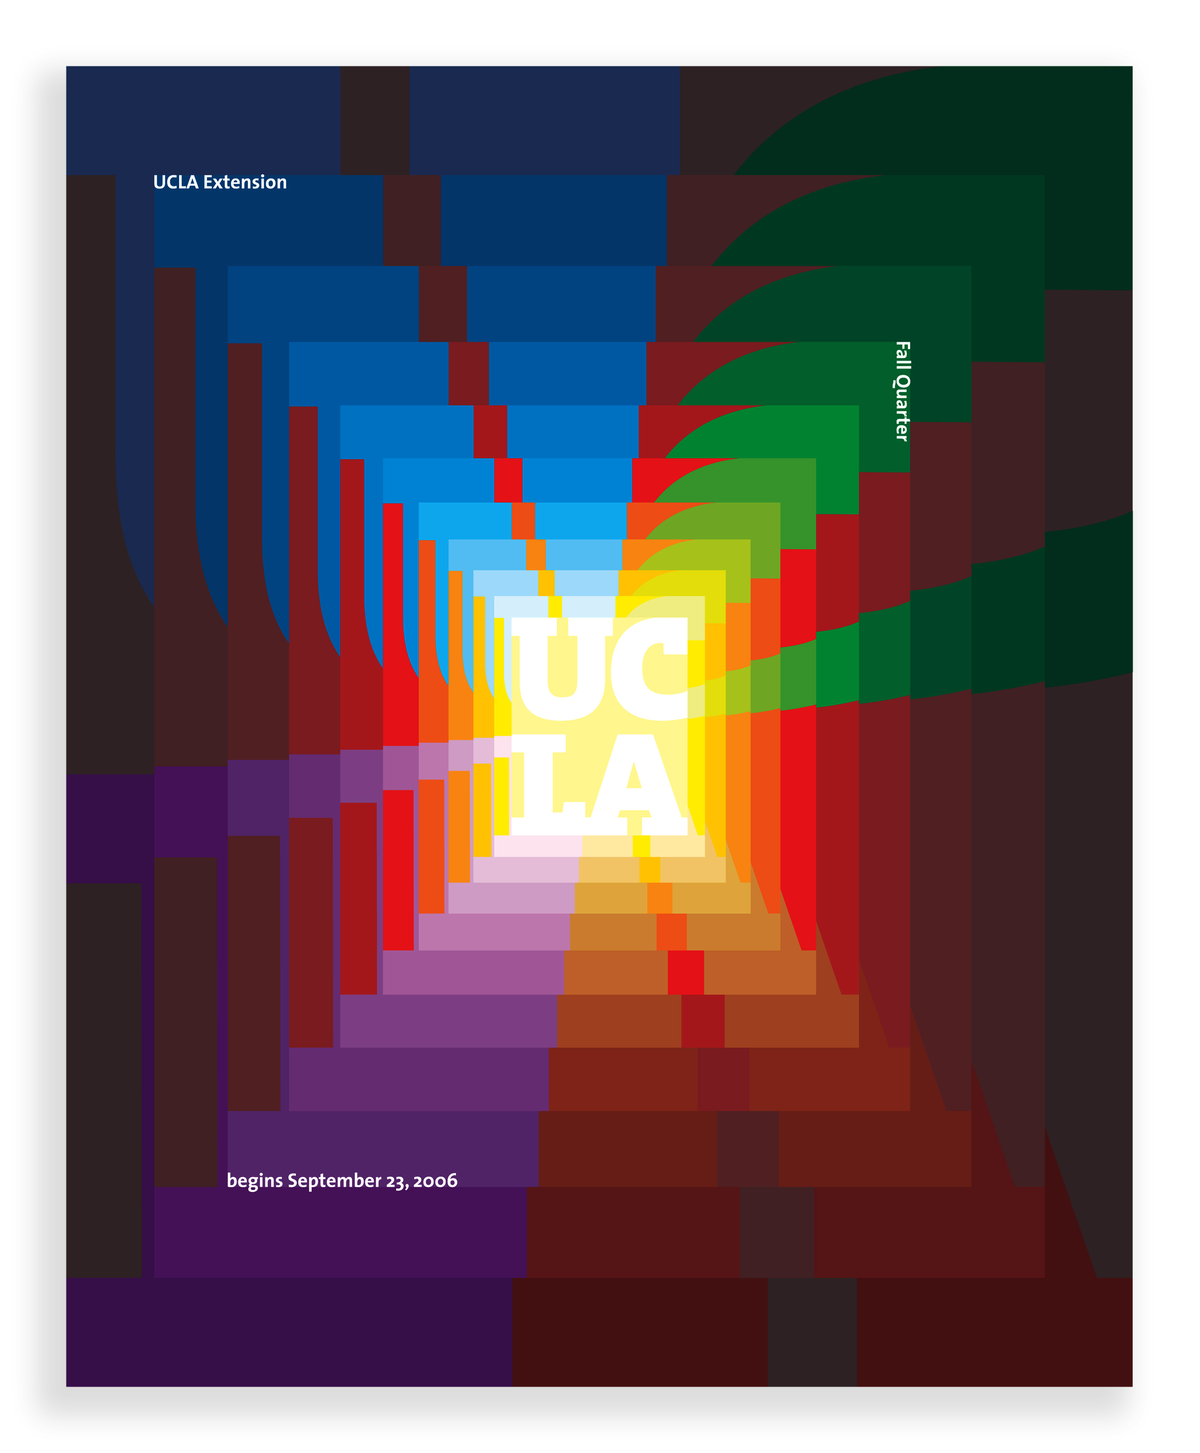 Project image 2 for Catalogue Cover, University of California, Los Angeles